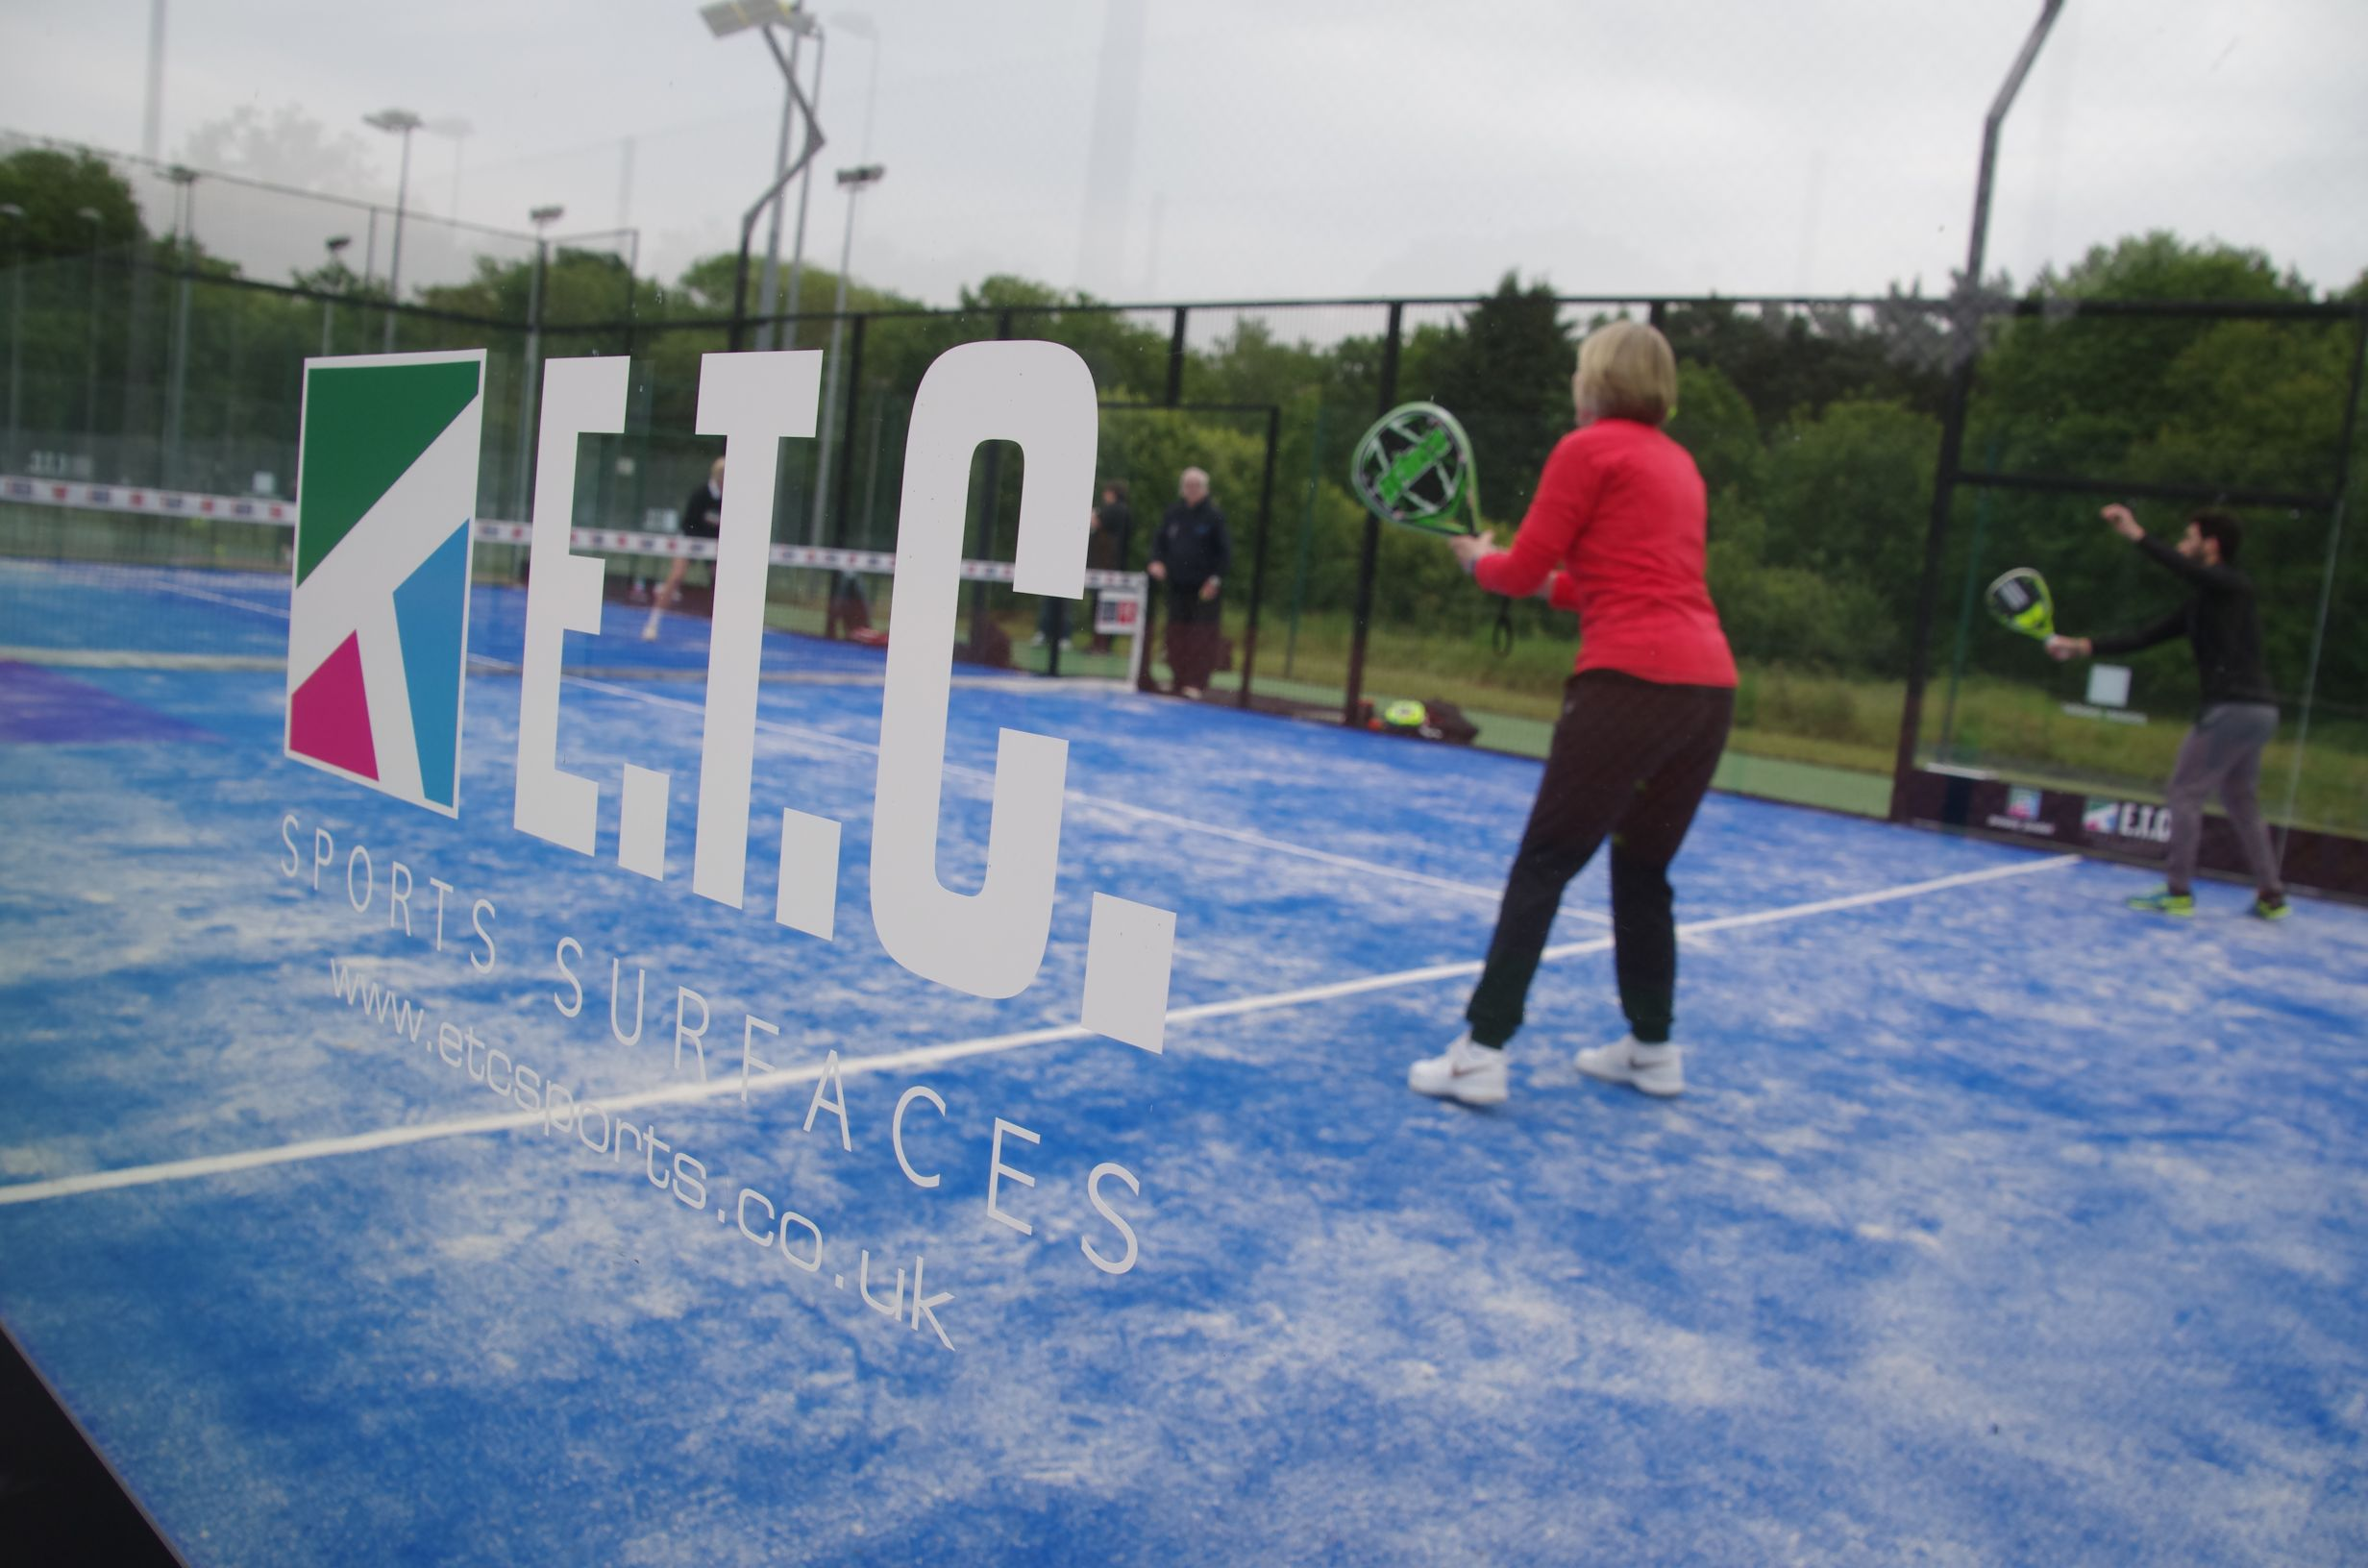 A Power Padel court construction is totally flexible and can be moved or stored to fit your main tennis court schedule.